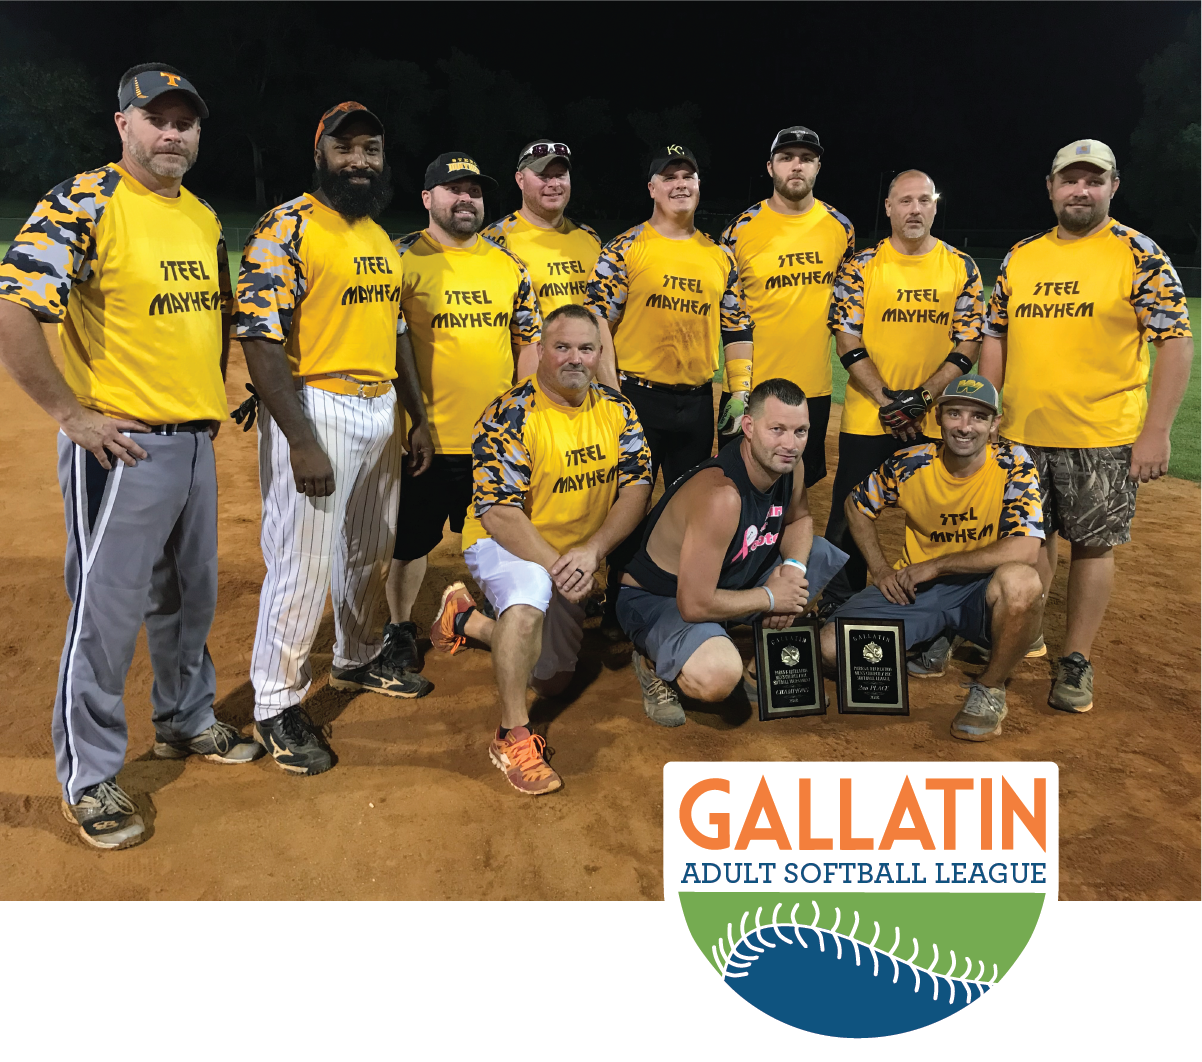 softball champs 2018_steel mayhem